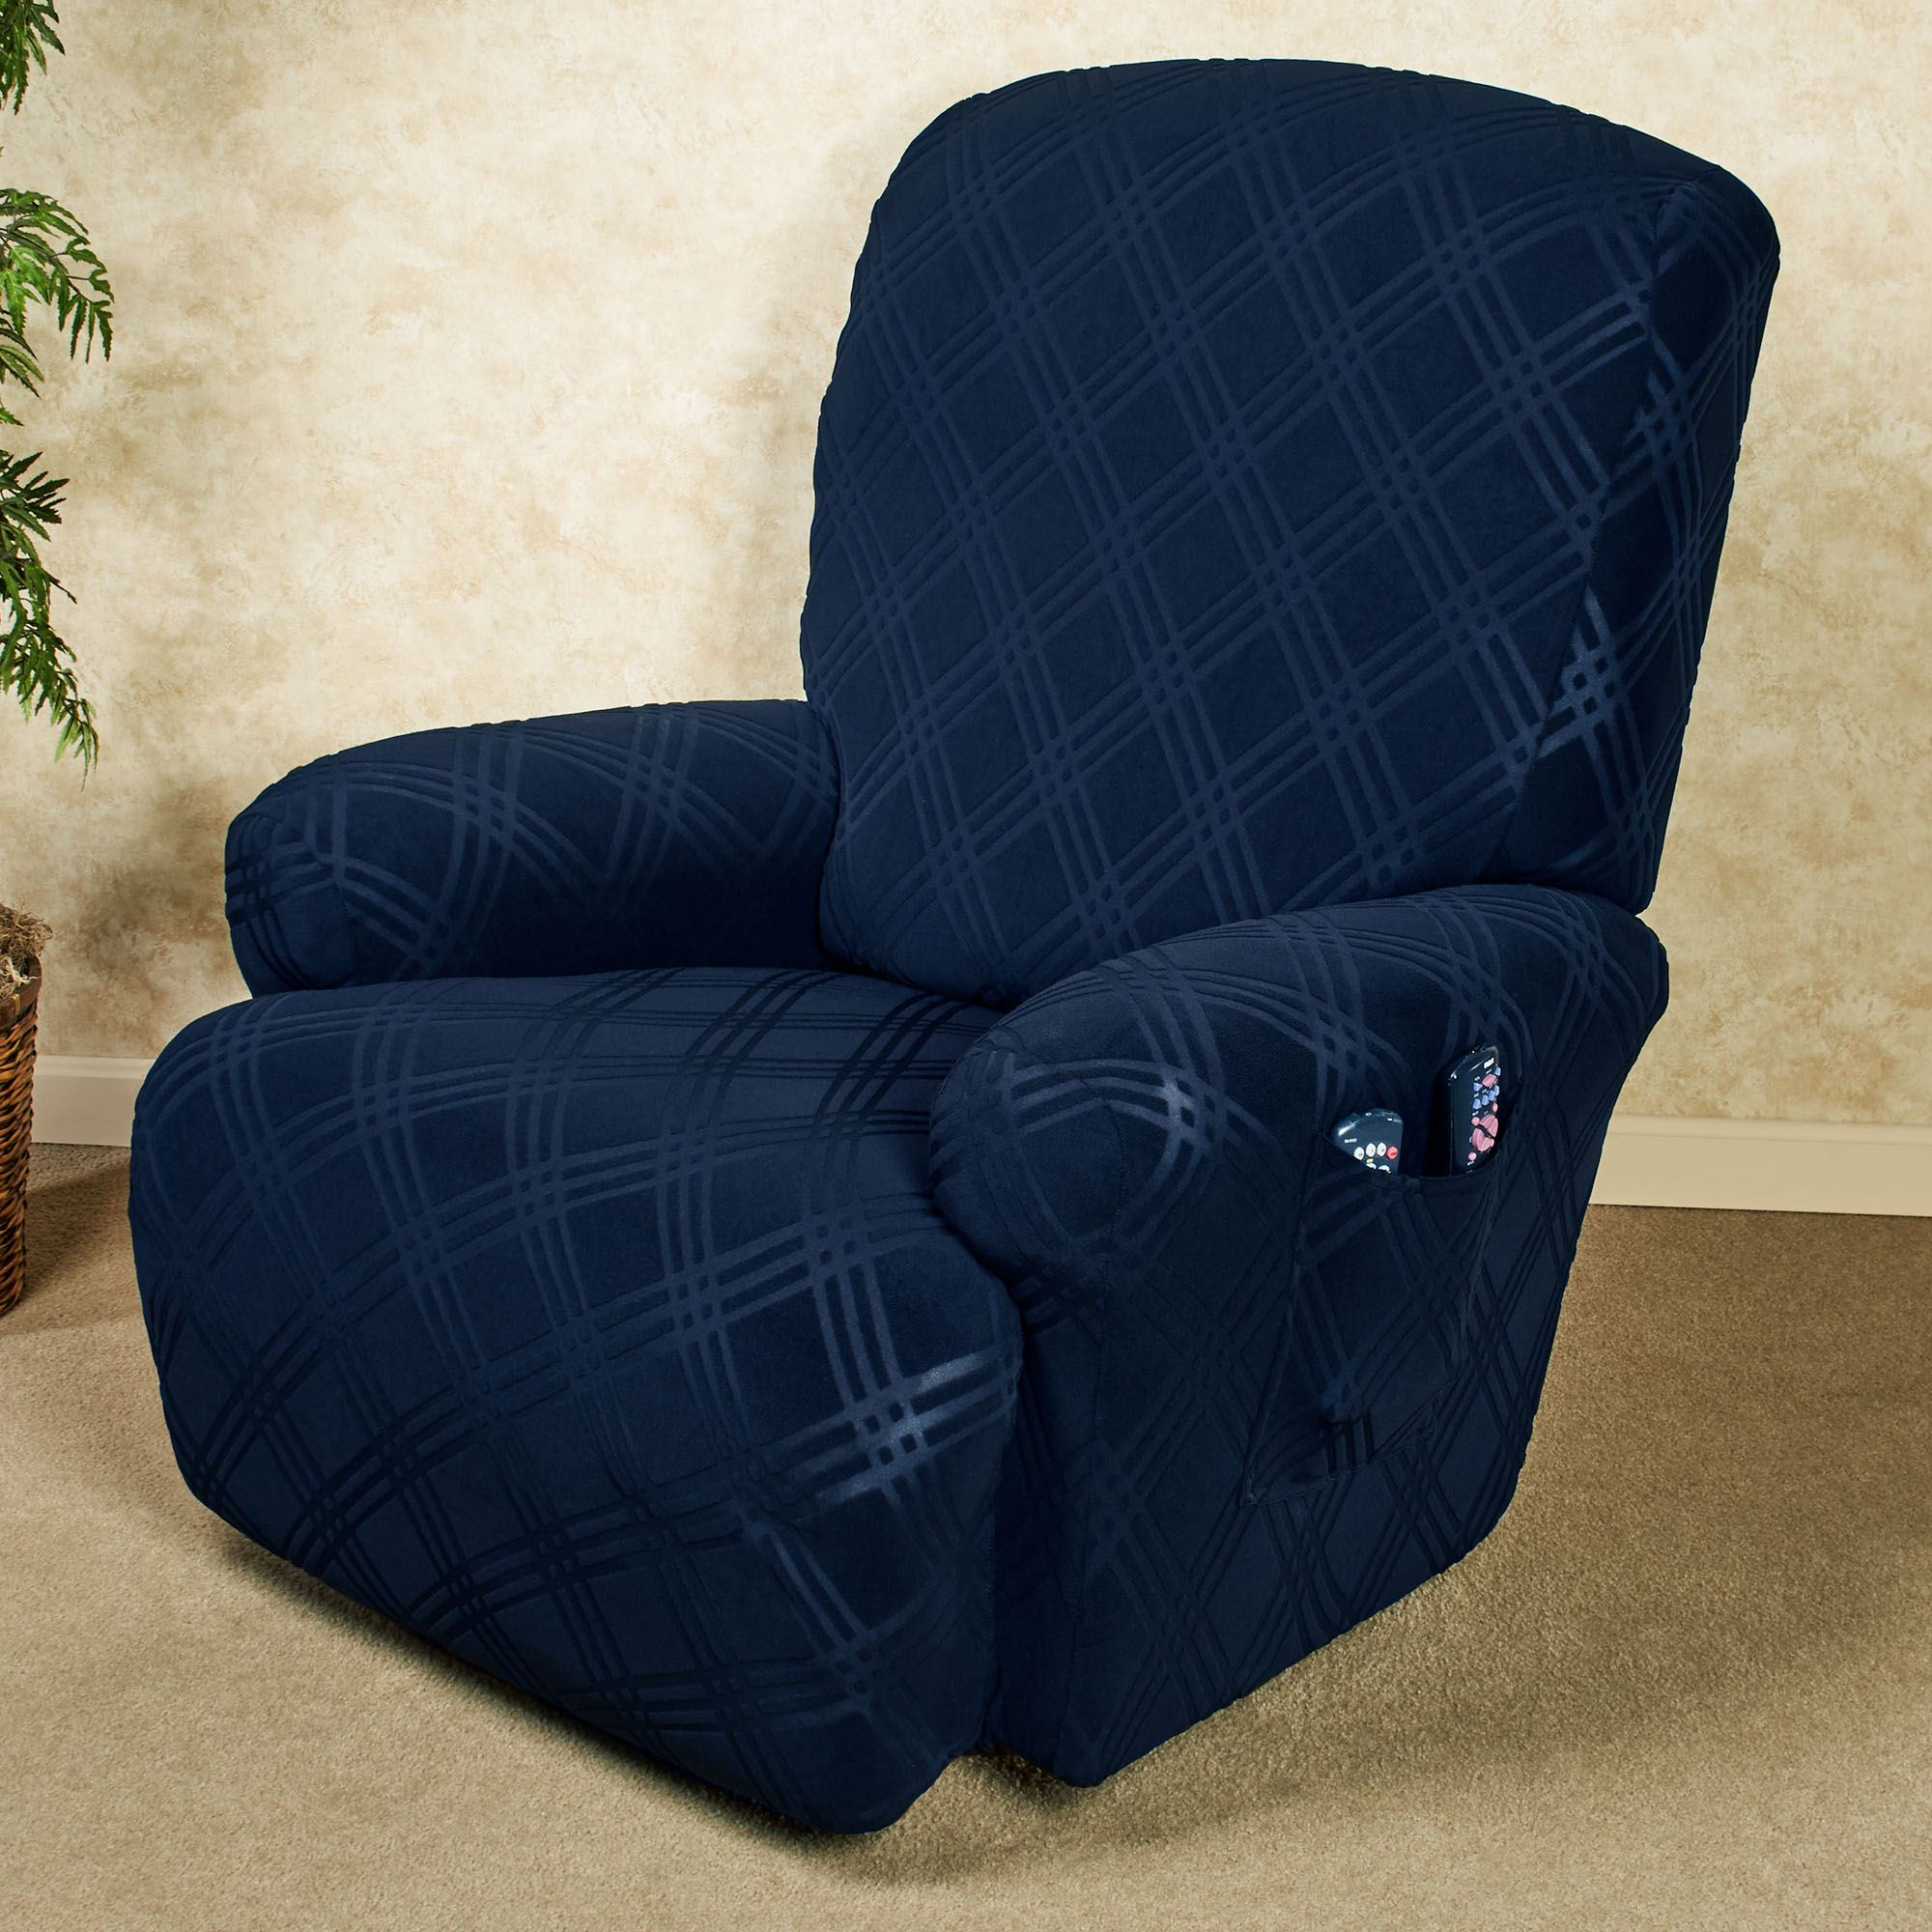 decor design for recliner cool slipcover to luxury on slipcovers modern furniture